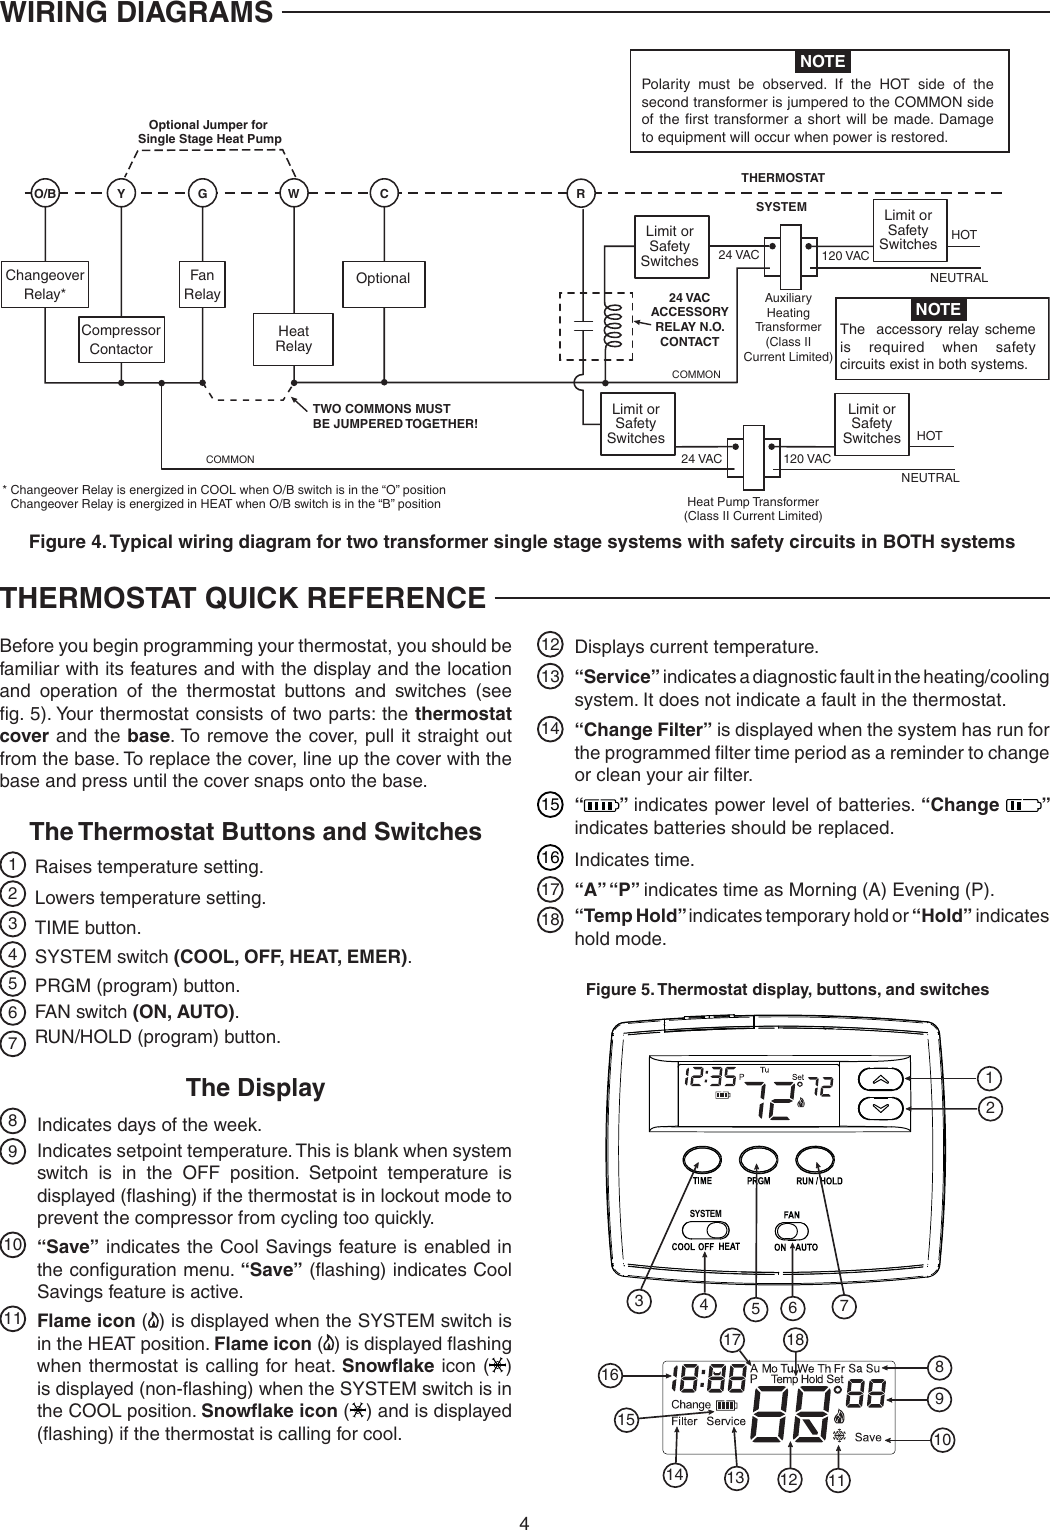 White Rodgers 1f80 0224 Emerson Blue 2 Single Stage Thermostat Wiring Diagram Manuals Page 4 Of 12